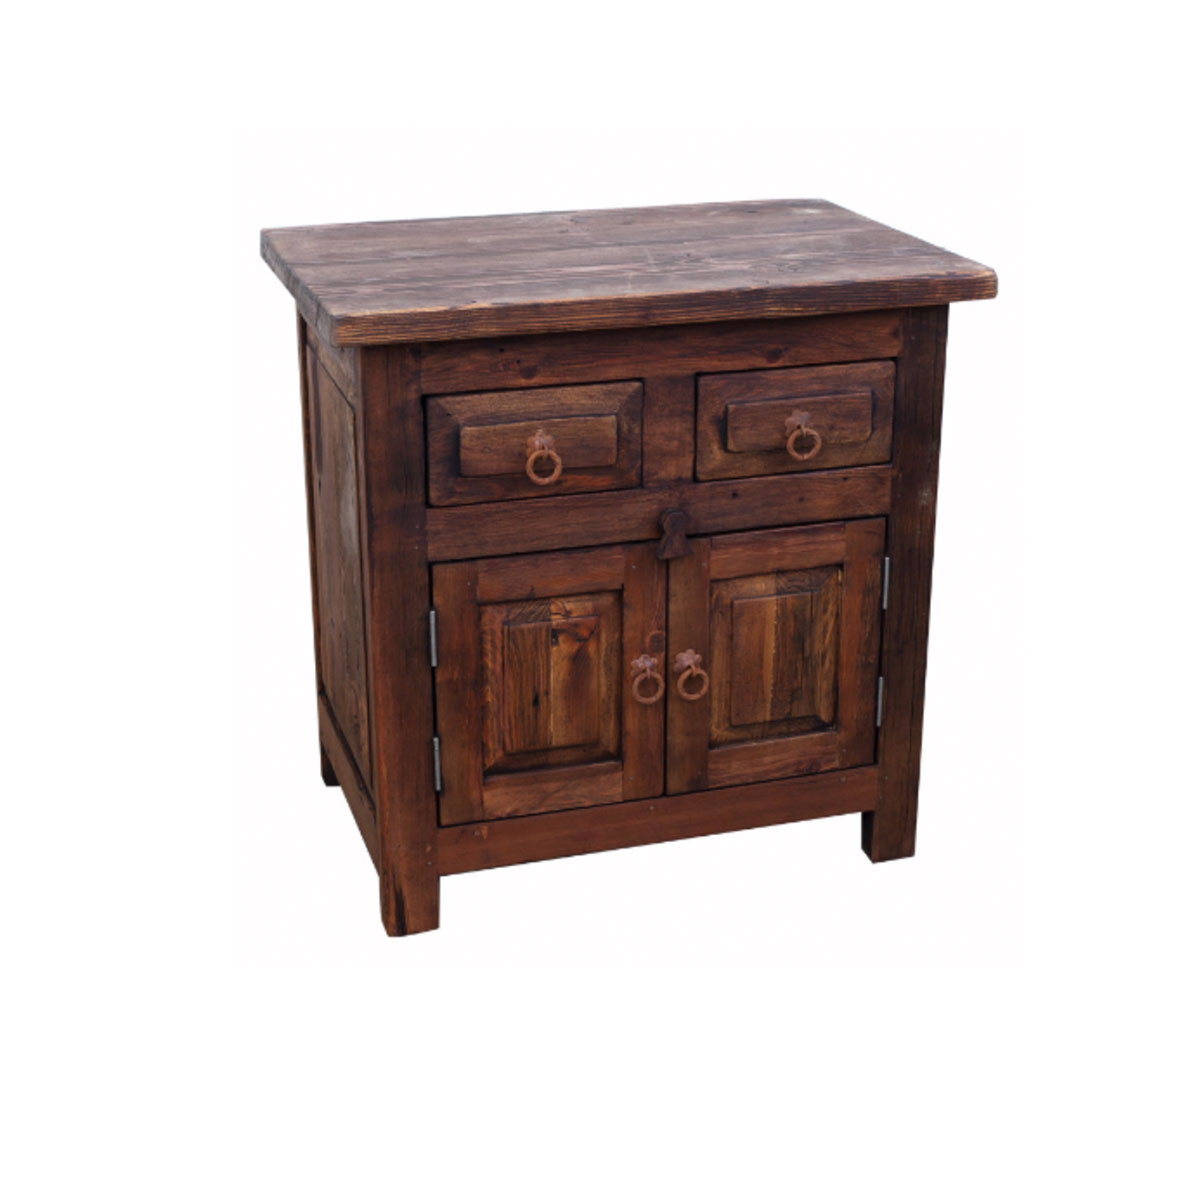 Buy 2 Drawer Rustic Bathroom Vanity Online Perfect For A Bathroom With Limited Space